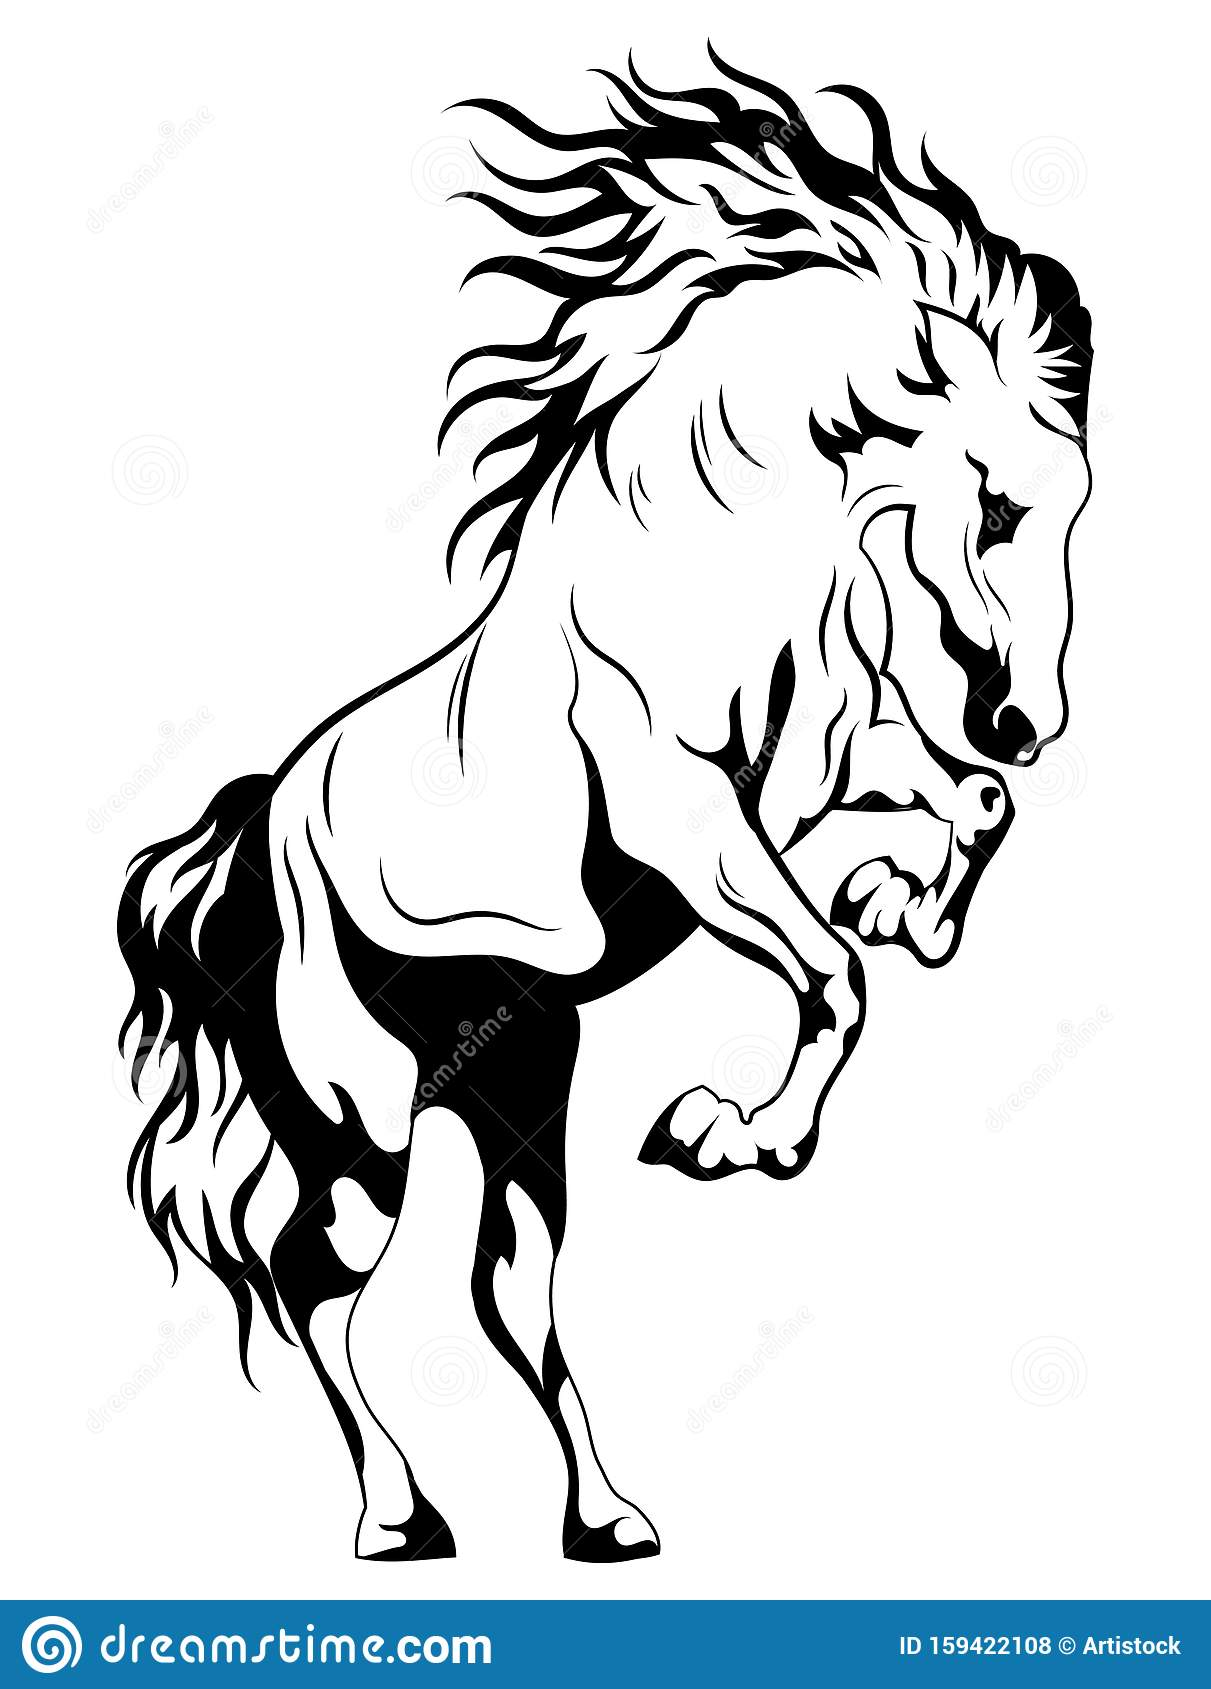 Wild Horse Black And White Illustration Of A Mustang Standing On Its Hind Legs Vector Drawing Of A Farm Animal Tattoo Stock Vector Illustration Of Attractive Cute 159422108